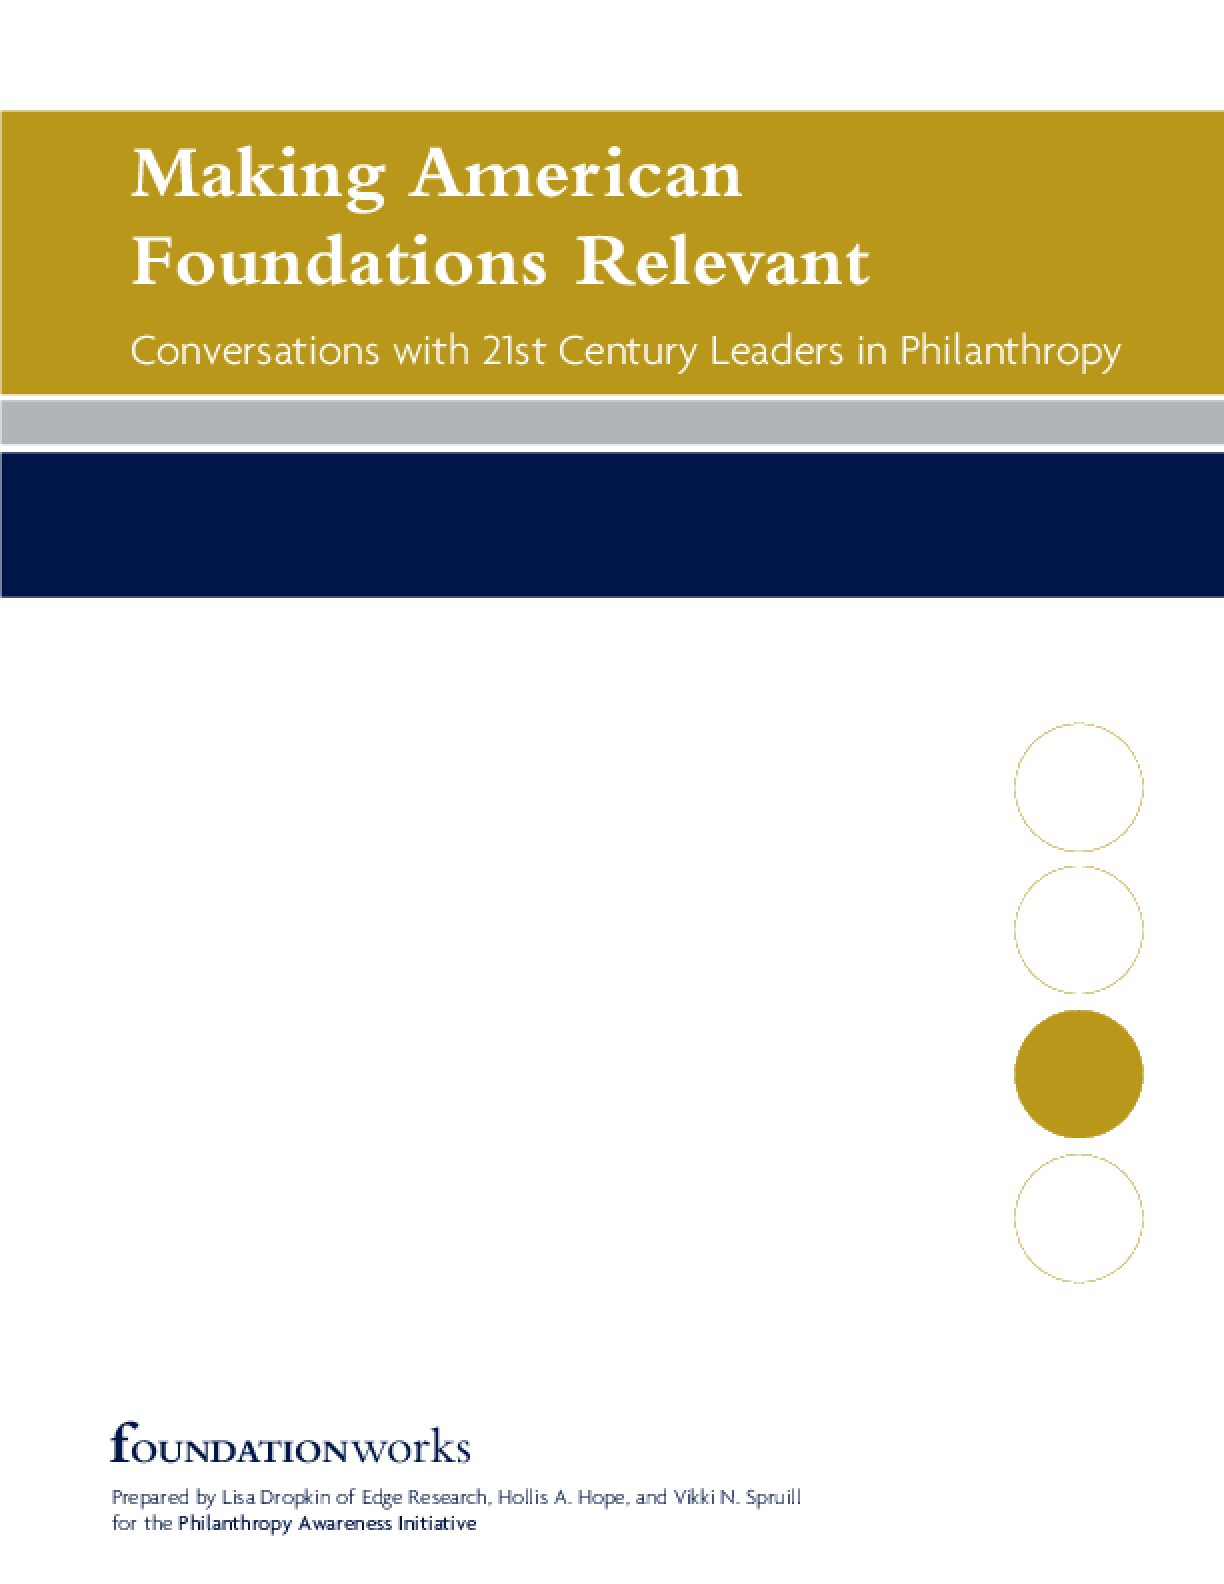 Making American Foundations Relevant